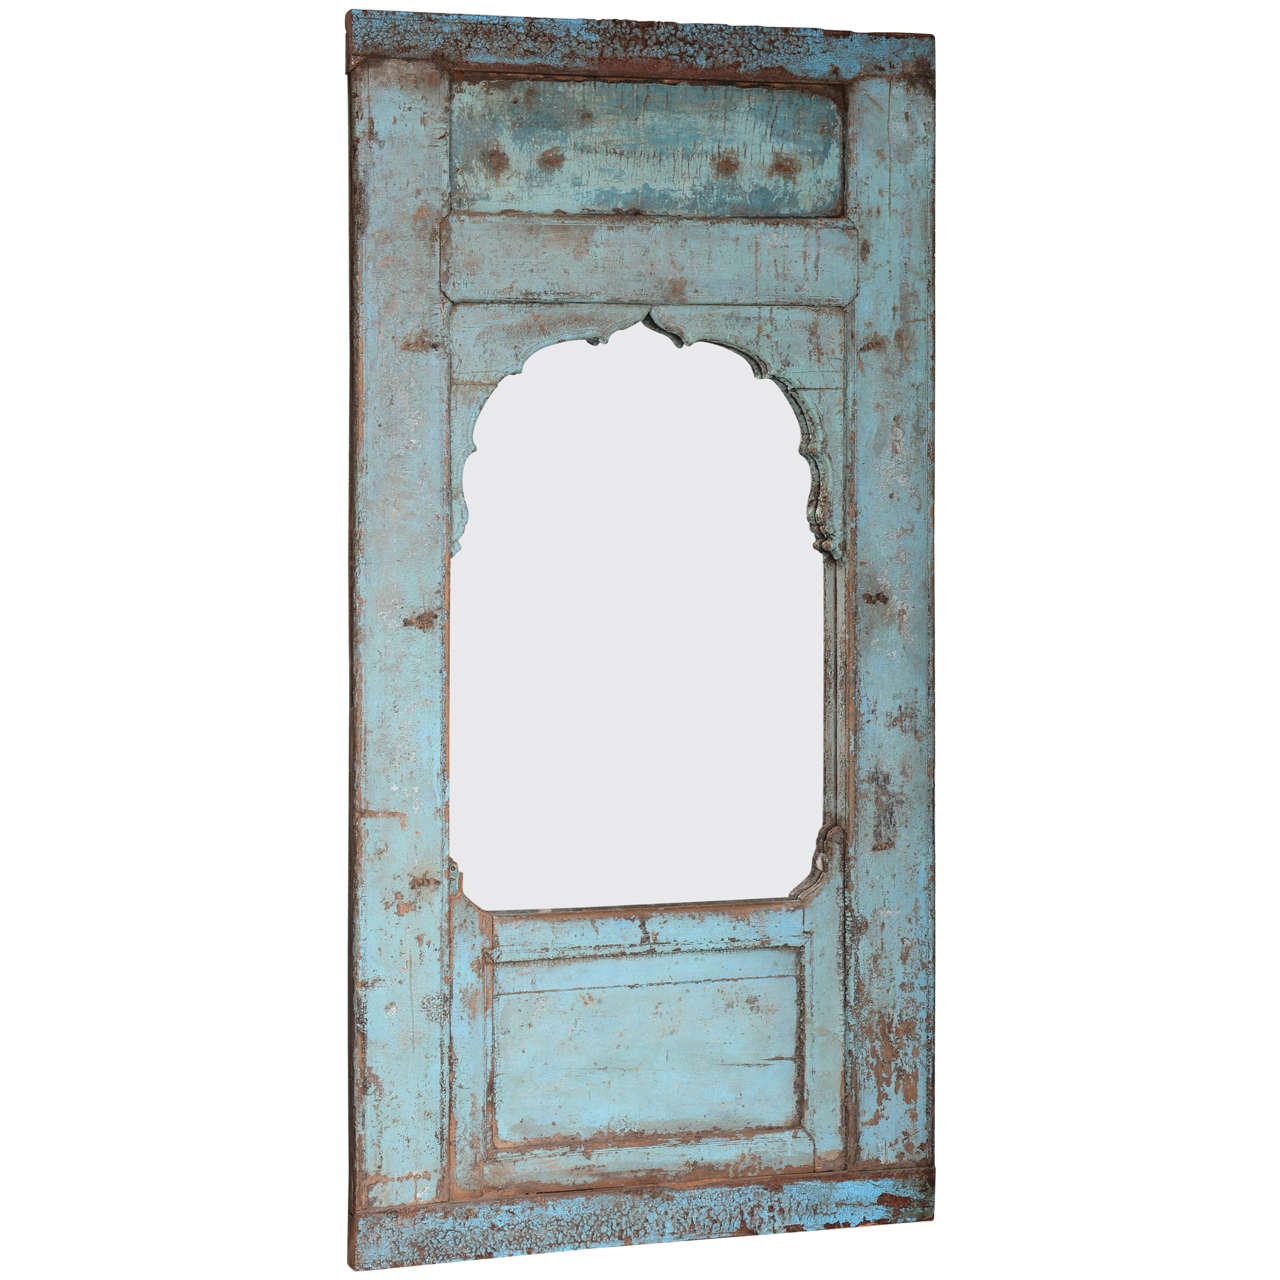 Antique Door turquoise,  full length   Mirror Insert, Java Enchanting,dramatic For Sale